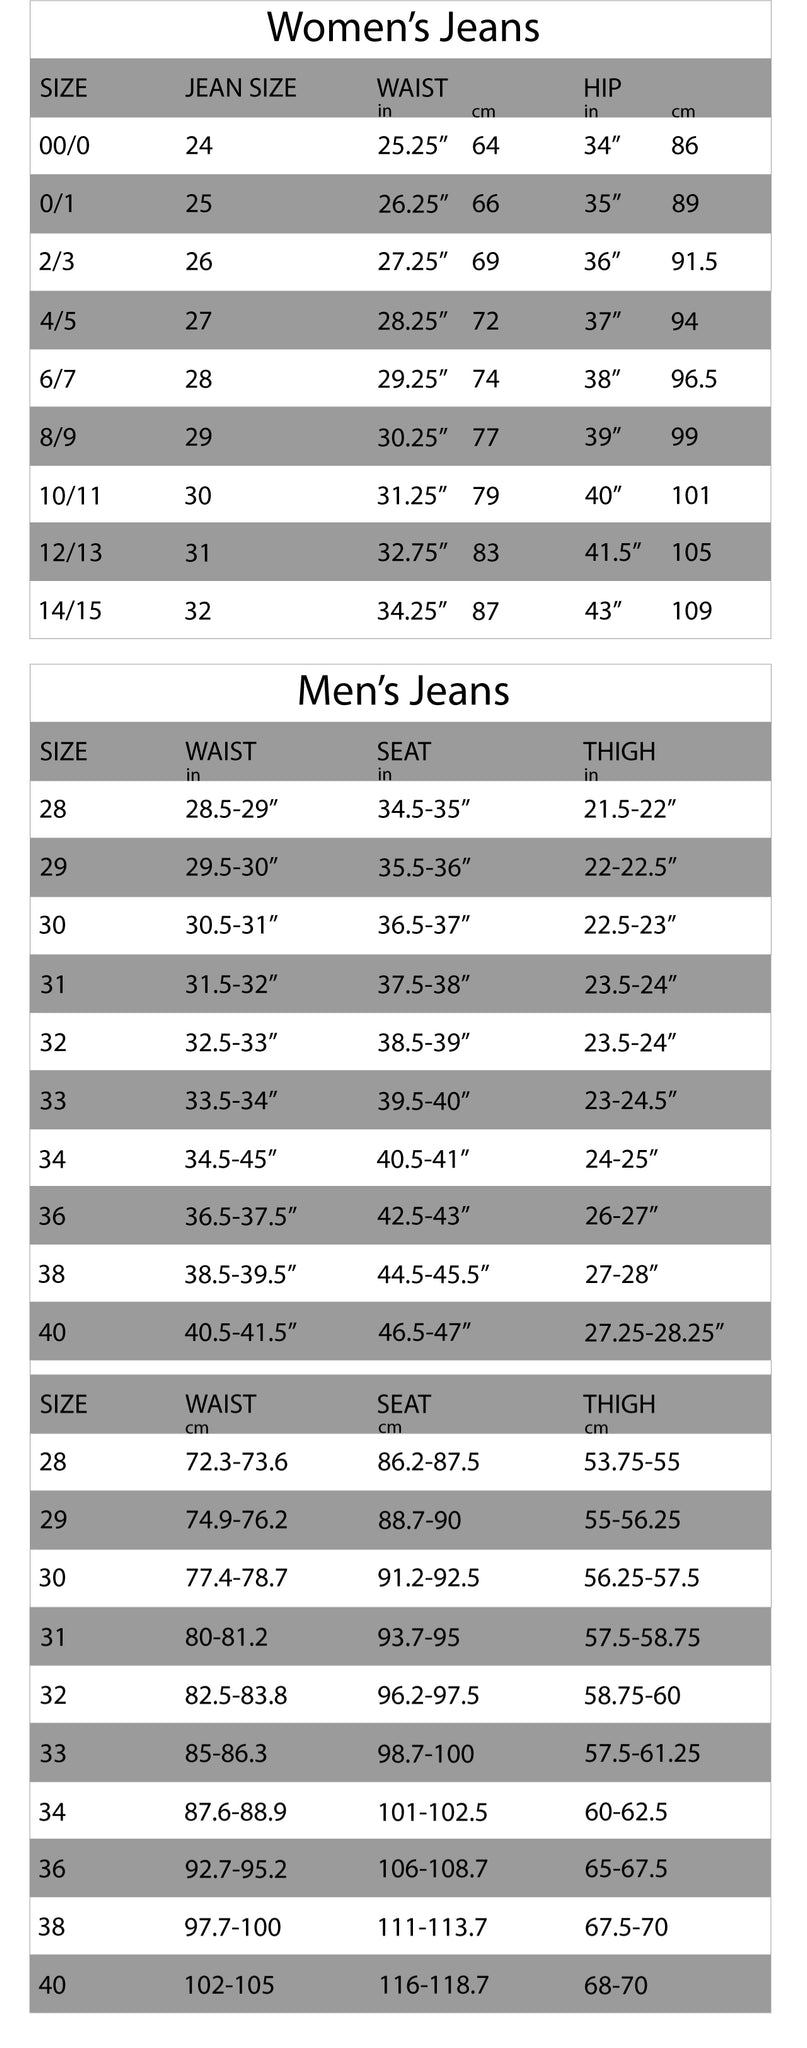 Levi's jeans size guide for men and women, sizes and measurements available in inches and centimeters. Find your size online at Below The Belt